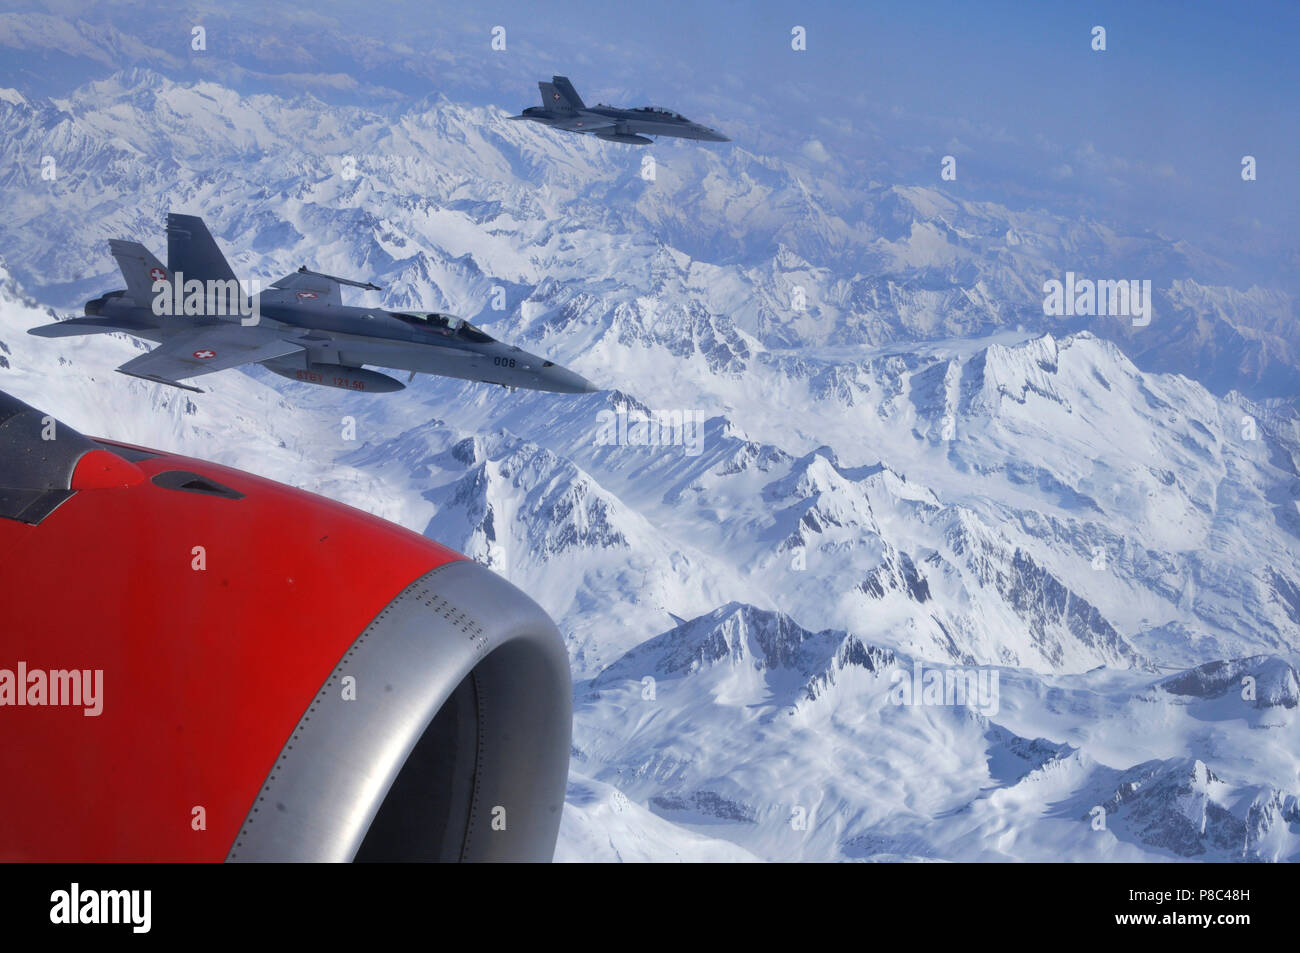 Swiss Alps: Two FA-18 Fighters are esocorting a civil airplaine over the swiss alps covered with snow and ice Stock Photo